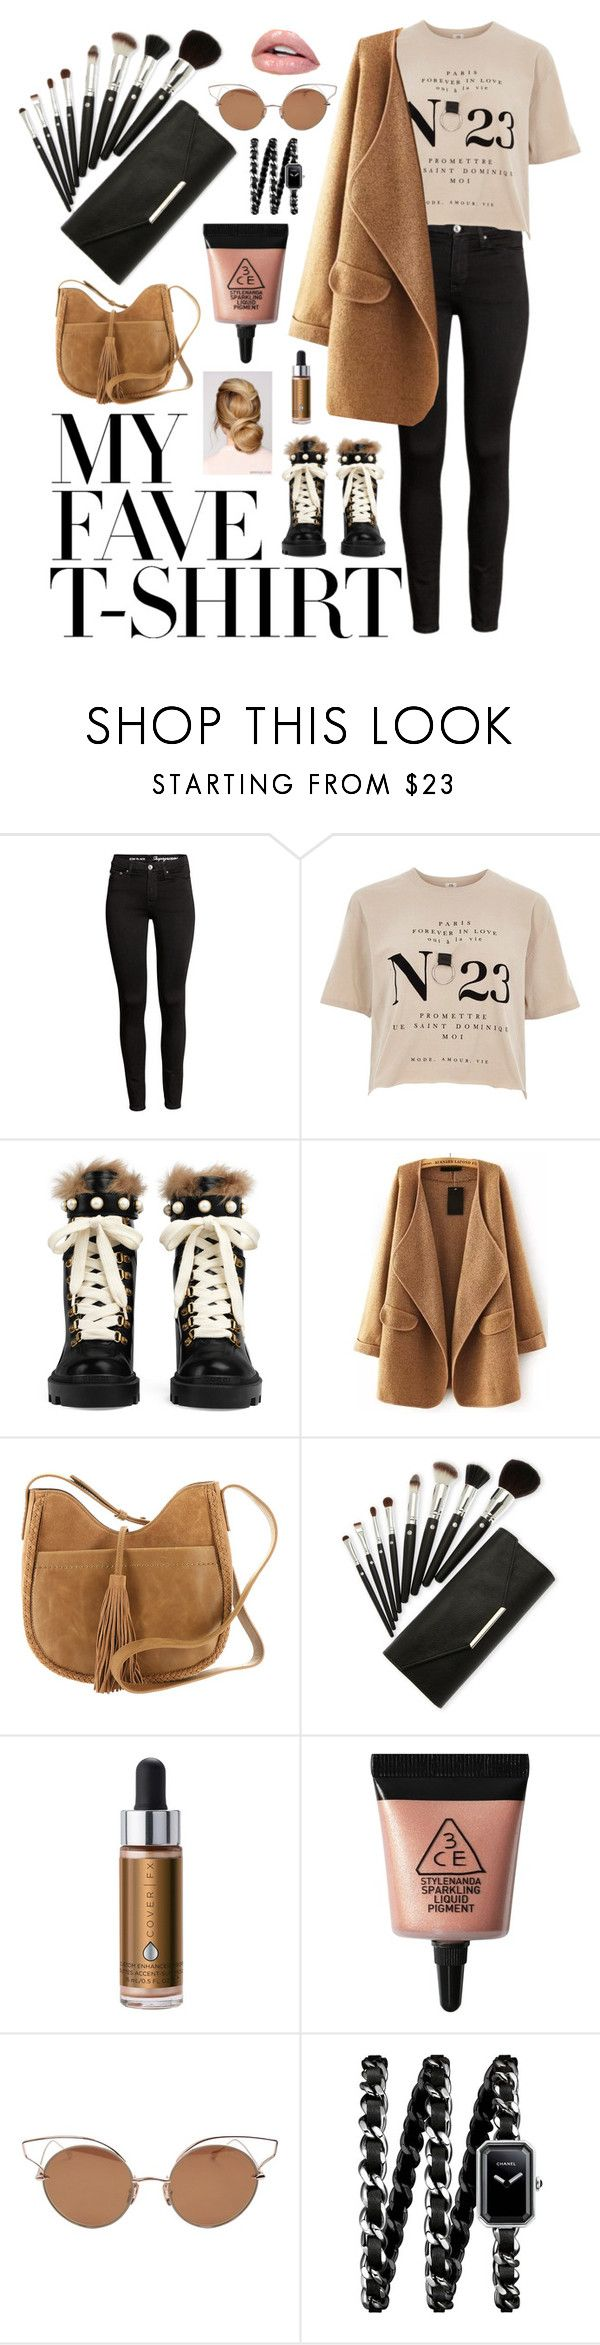 """My #️⃣1️⃣ Tshirt"" by hmytran ❤ liked on Polyvore featuring River Island, Gucci, WithChic, Lucky Brand, Sephora Collection, 3 Concept Eyes, Dita, Chanel and MyFaveTshirt"